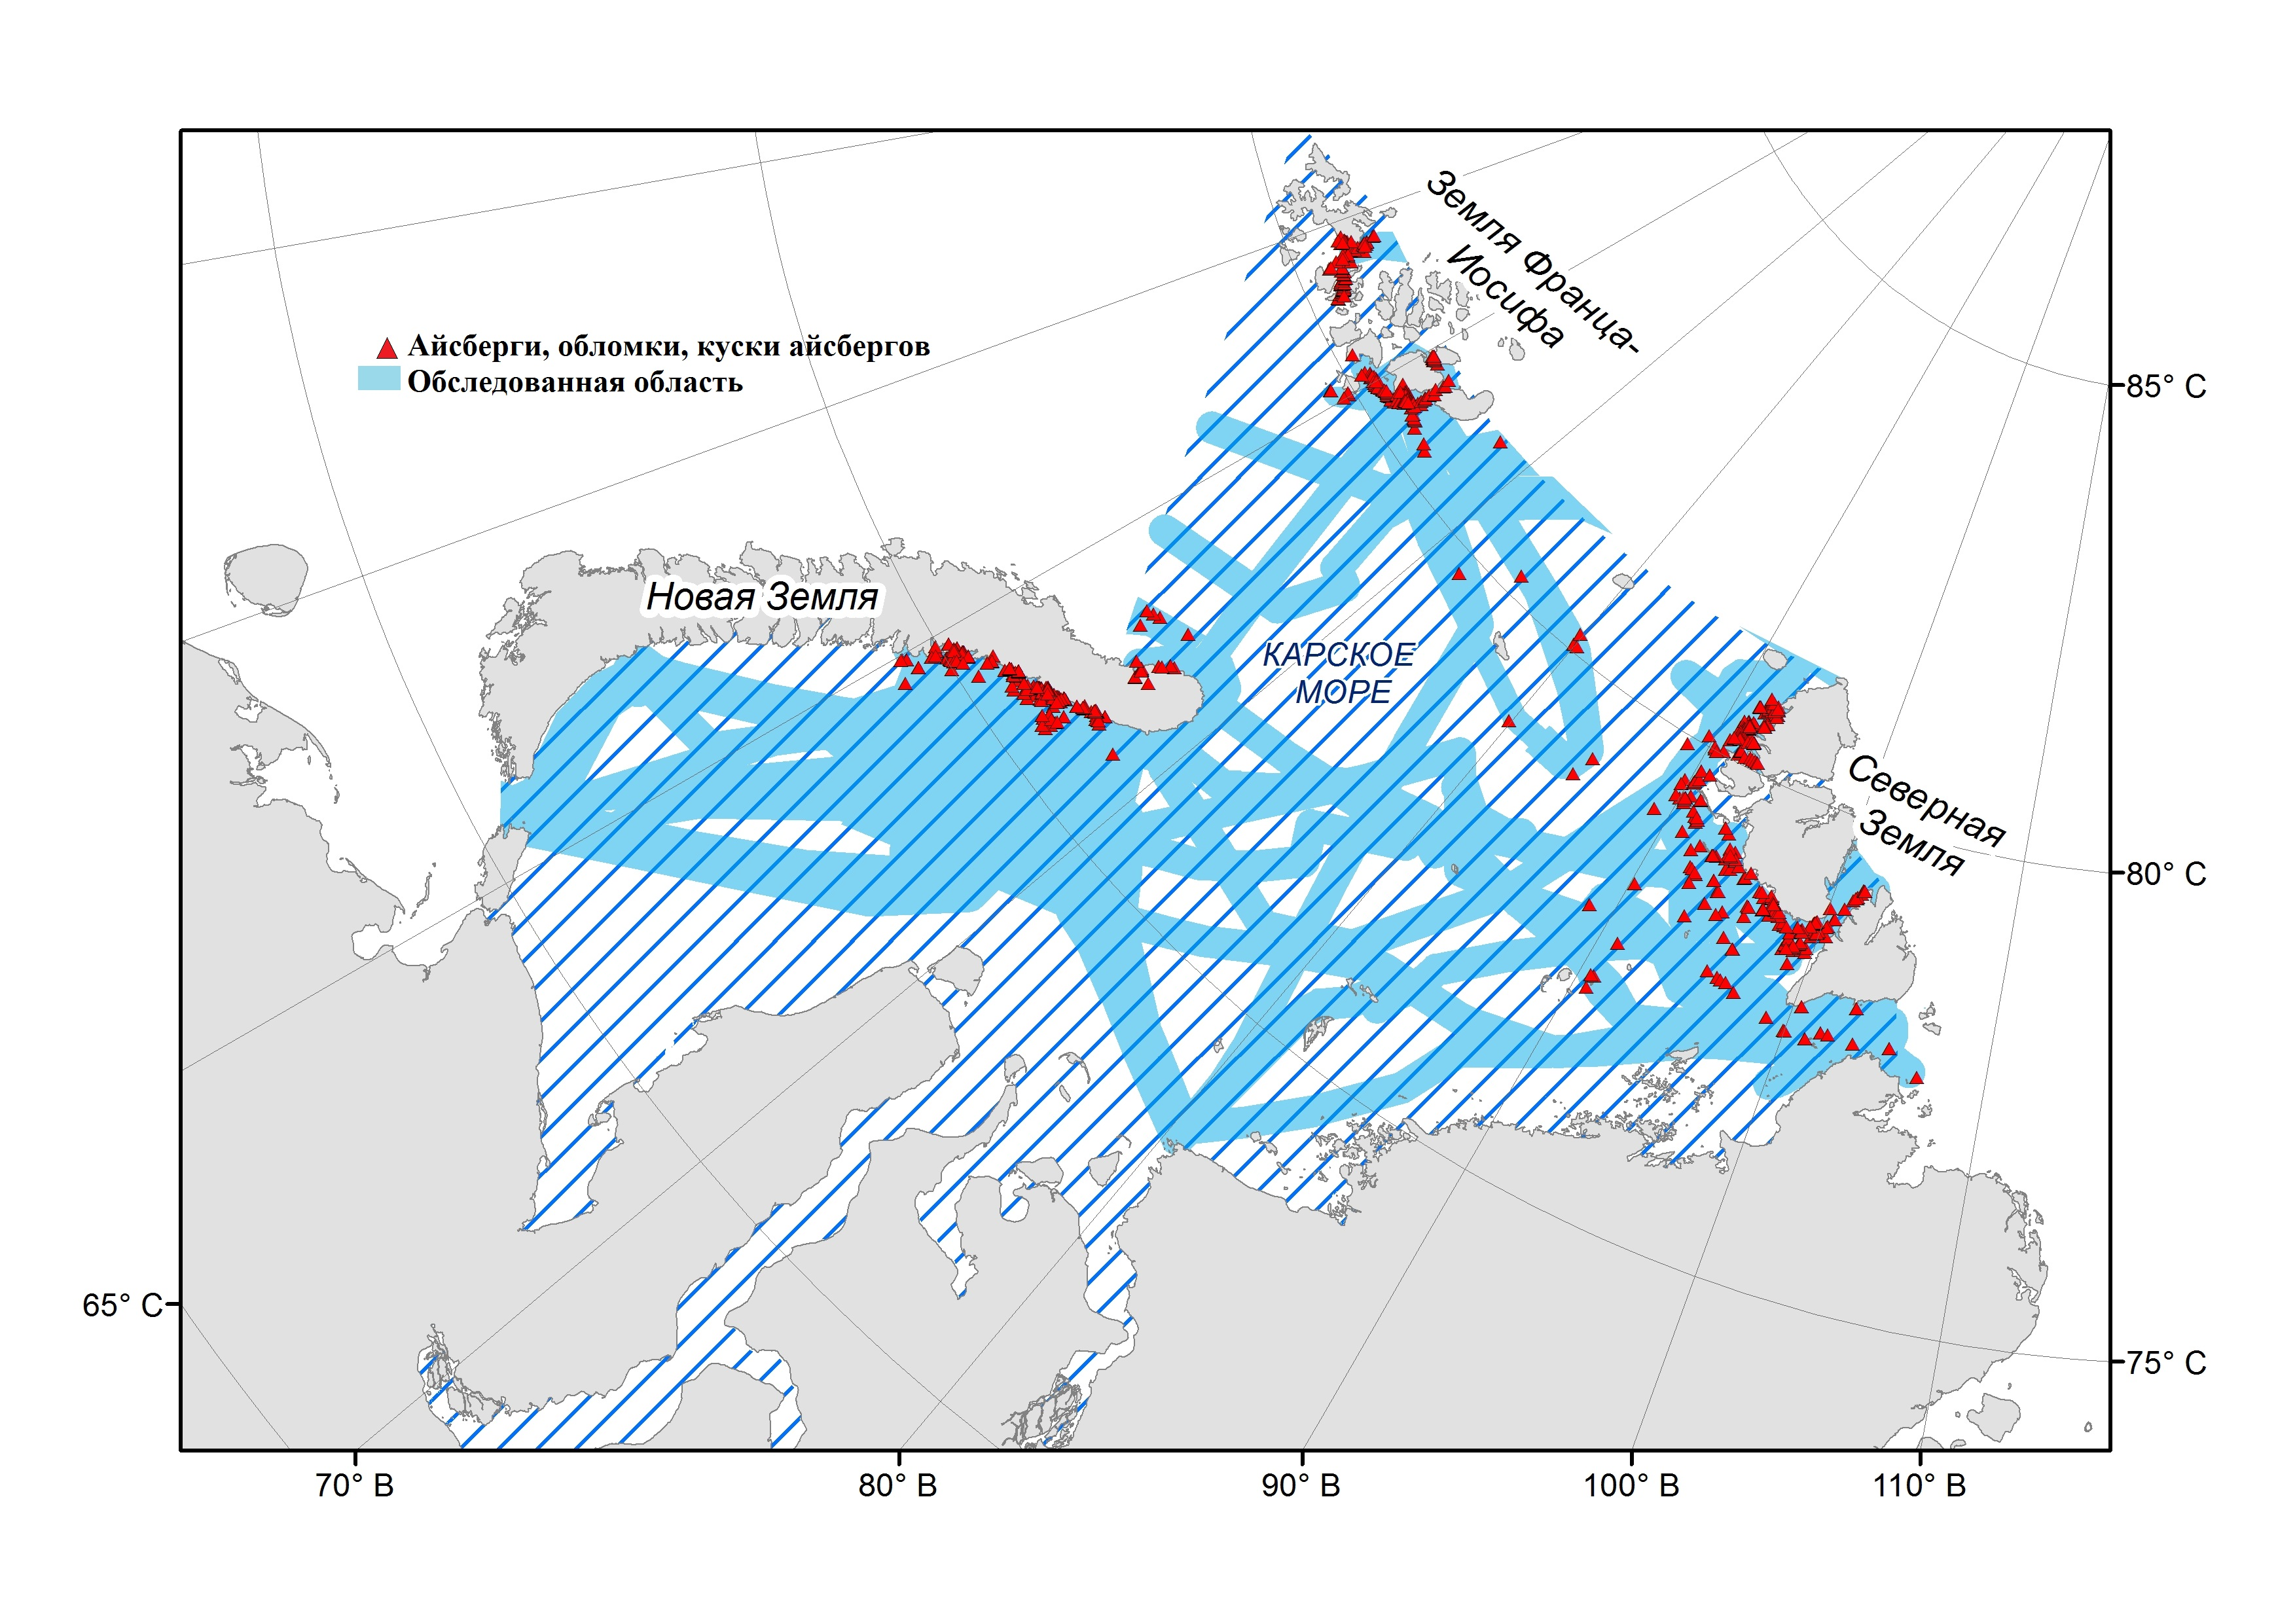 Specific Features of Iceberg Distribution According to Shipborne Observations in the Kara Sea in 2004-2019